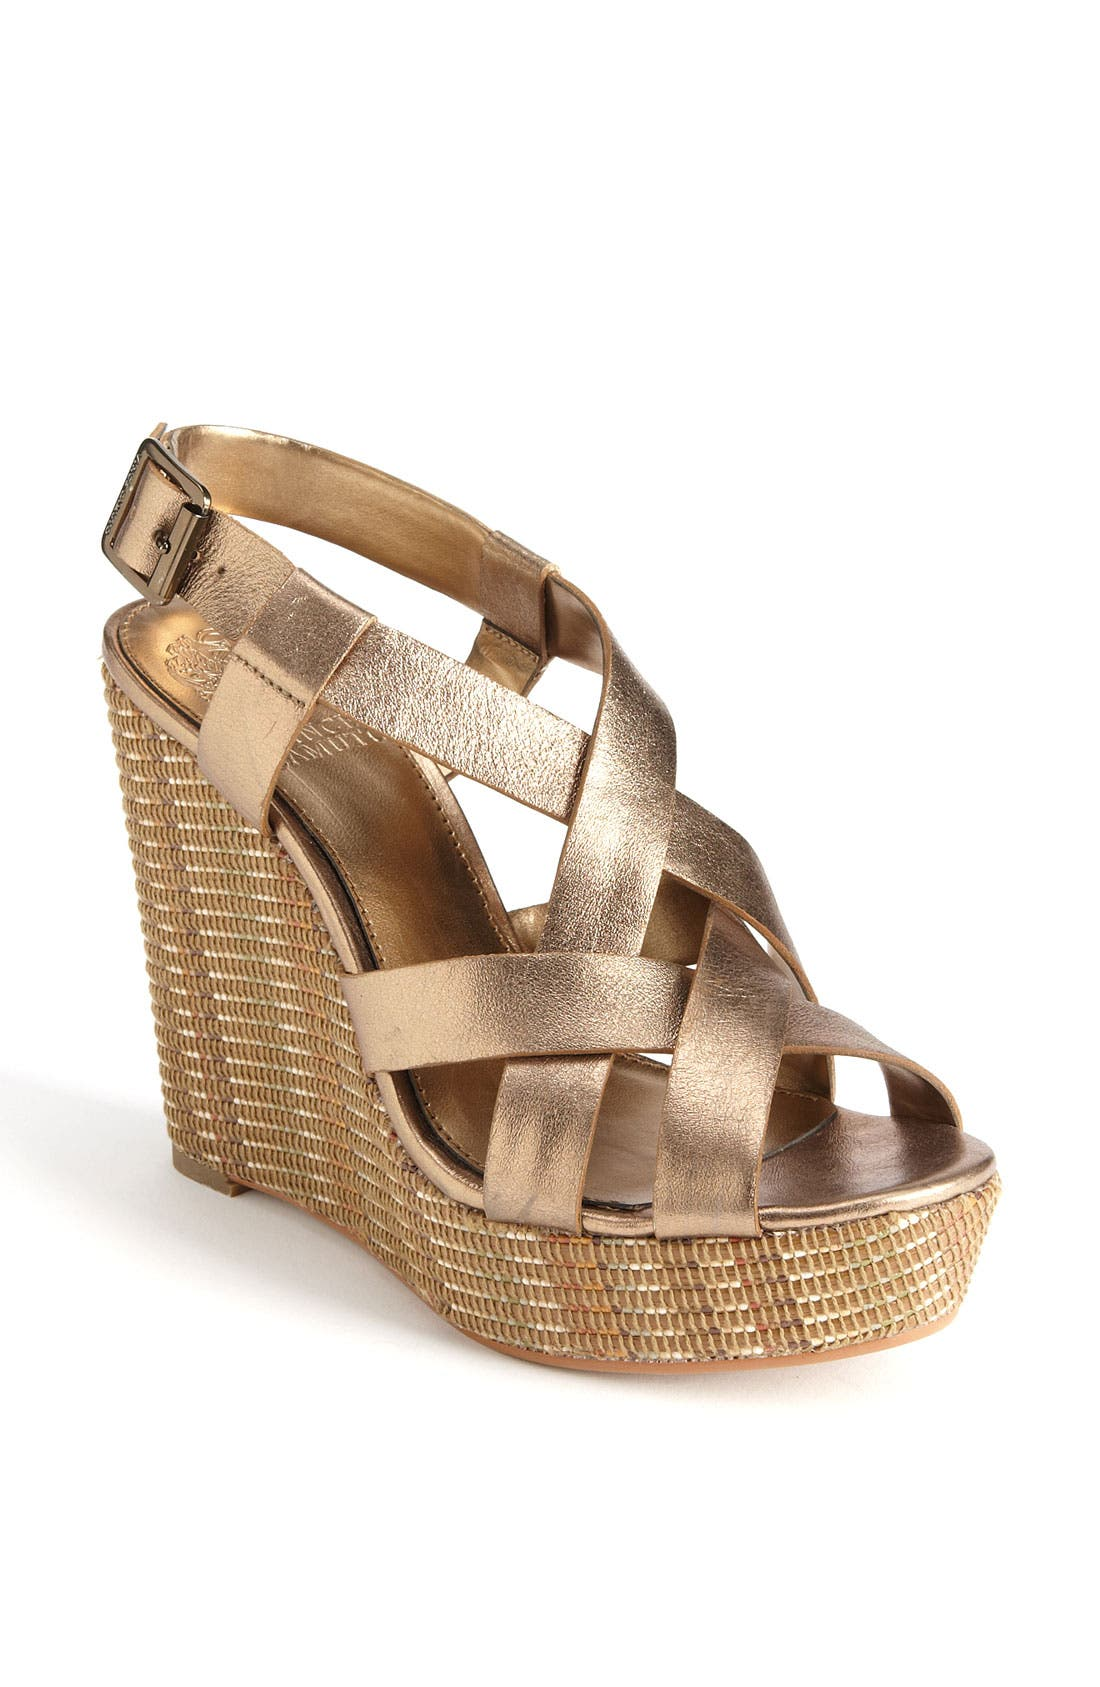 Alternate Image 1 Selected - Vince Camuto 'Hattie' Sandal (Exclusive)